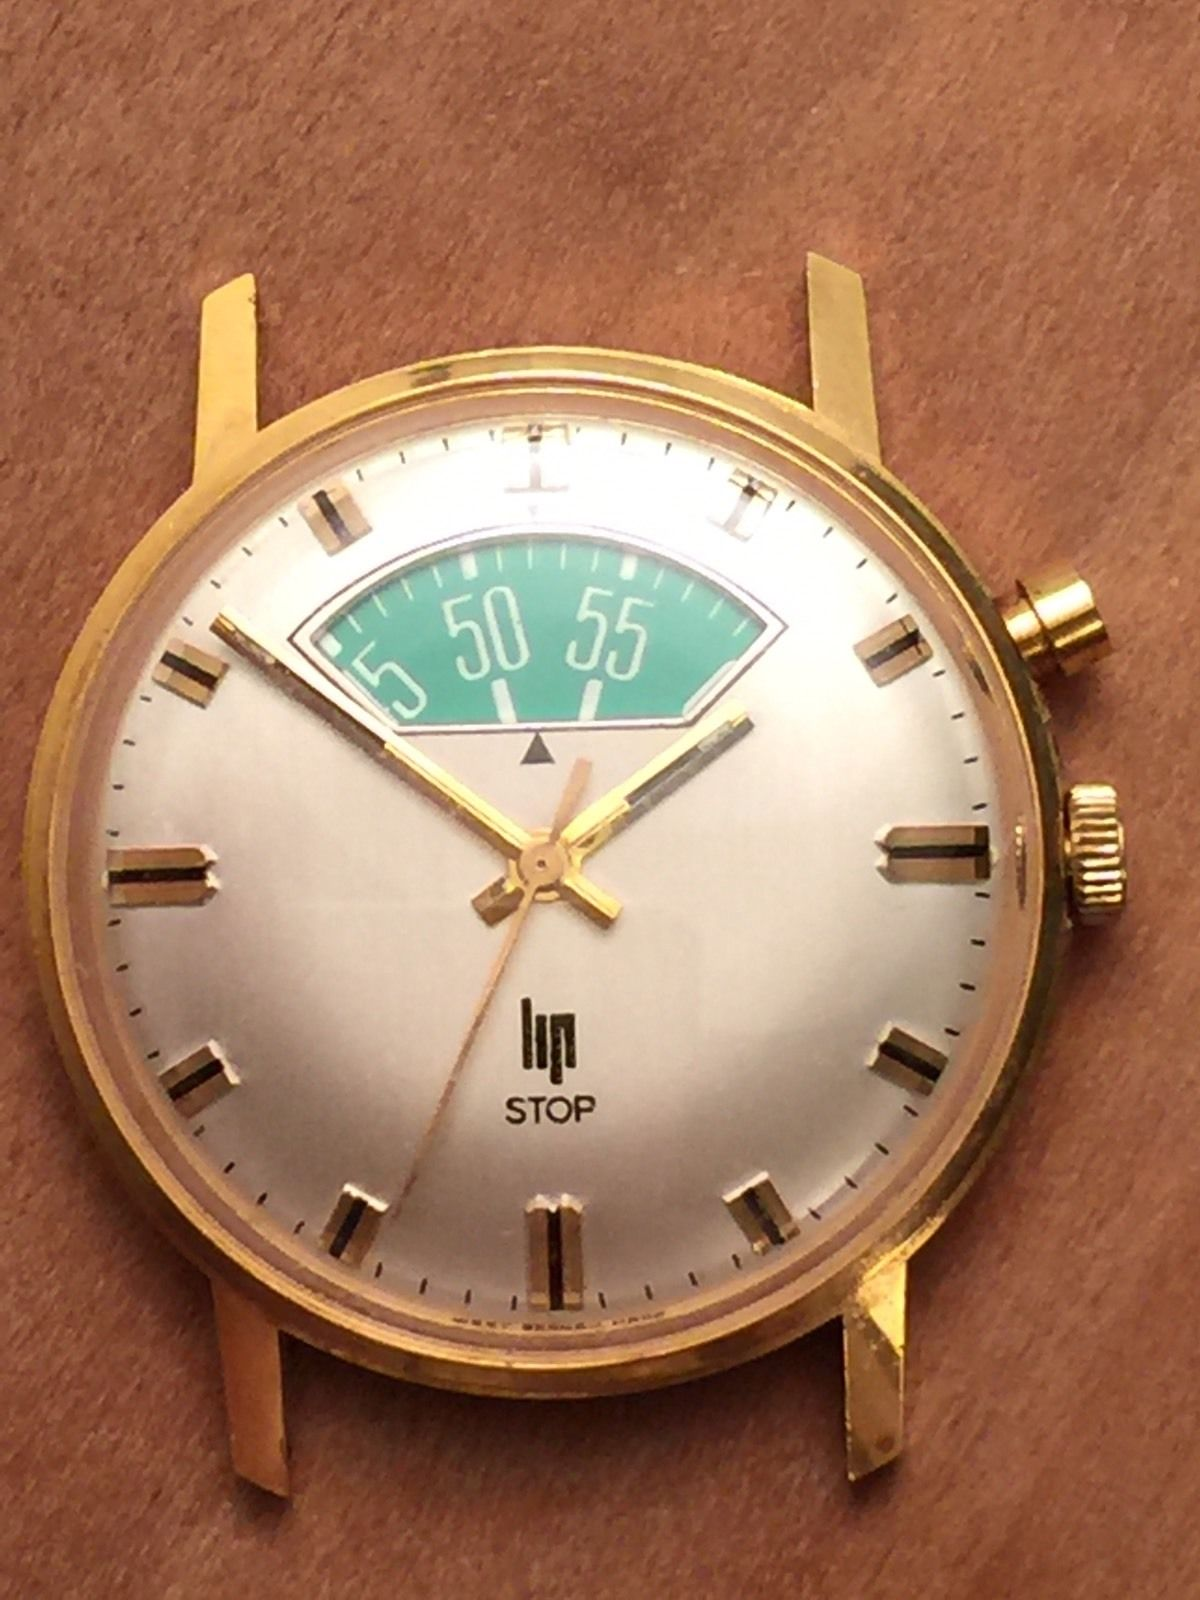 Doesn't get much more nostalgic and retro than this classy piece. Photo from eBay listing, click through to purchase.